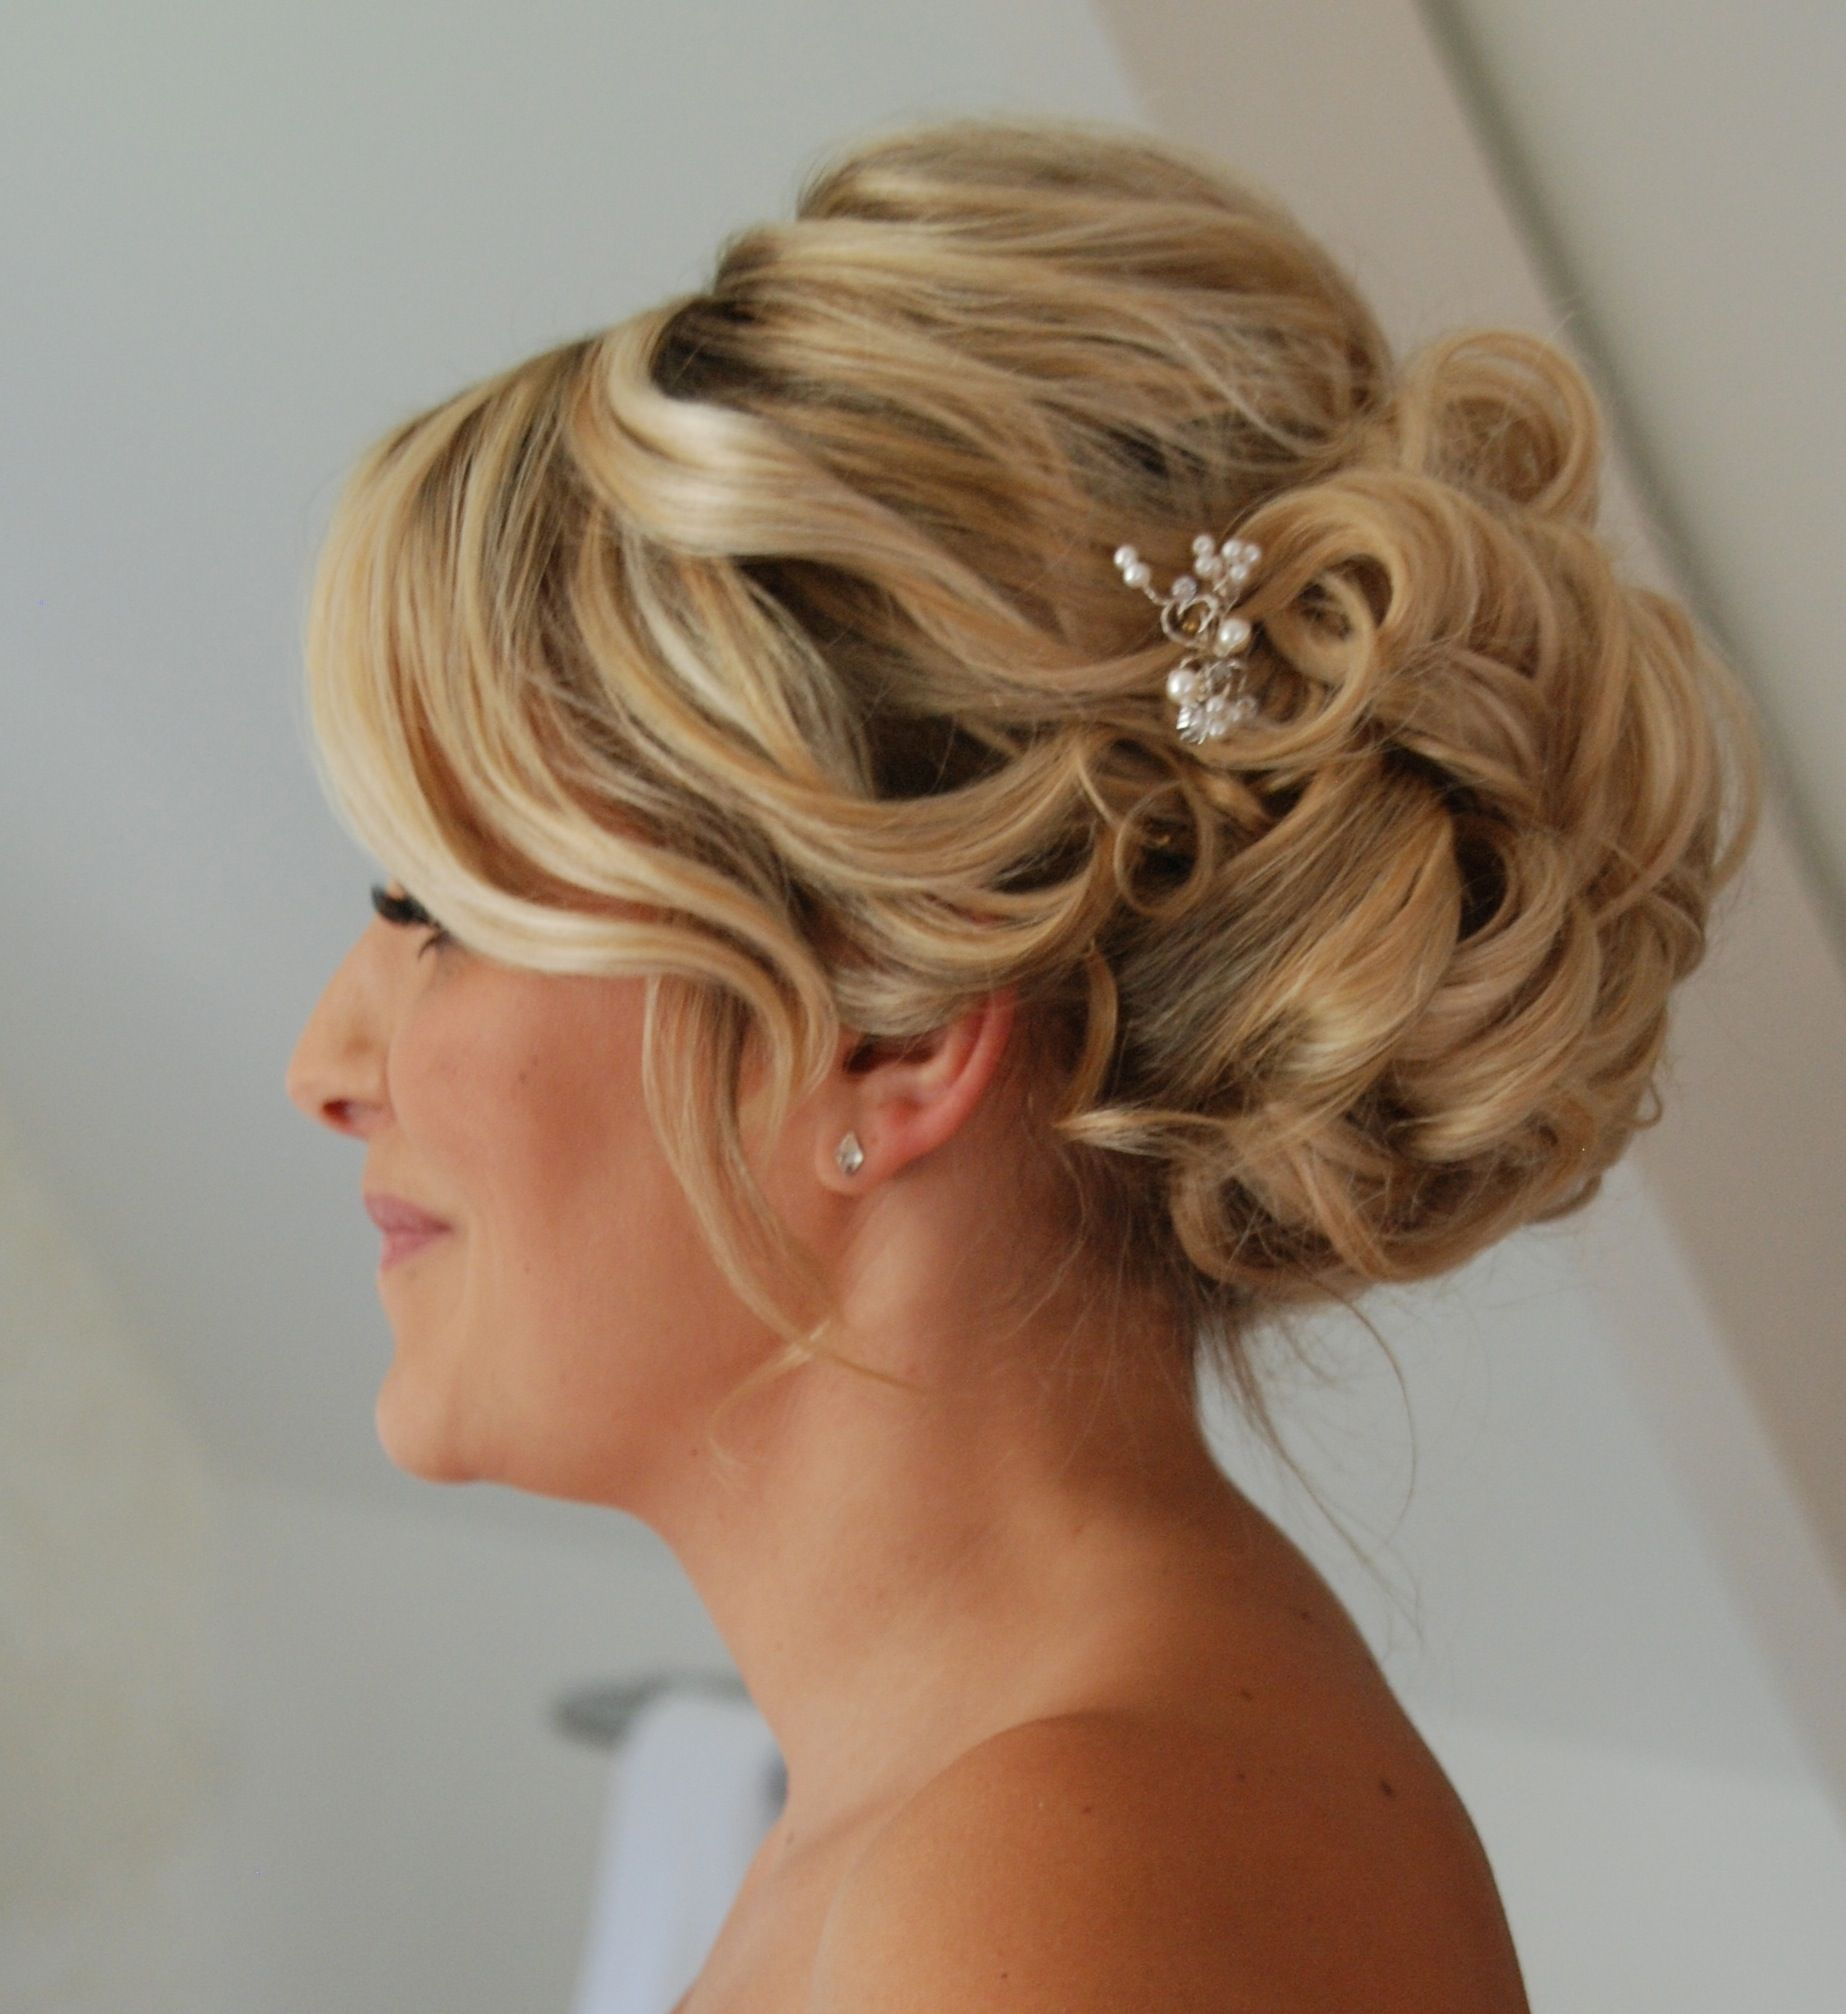 Relaxed Up Do With Sparkly Pin Www Beautifulhair4weddings Co Uk Updos For Medium Length Hair Mother Of The Bride Hair Mother Of The Bride Hair Short